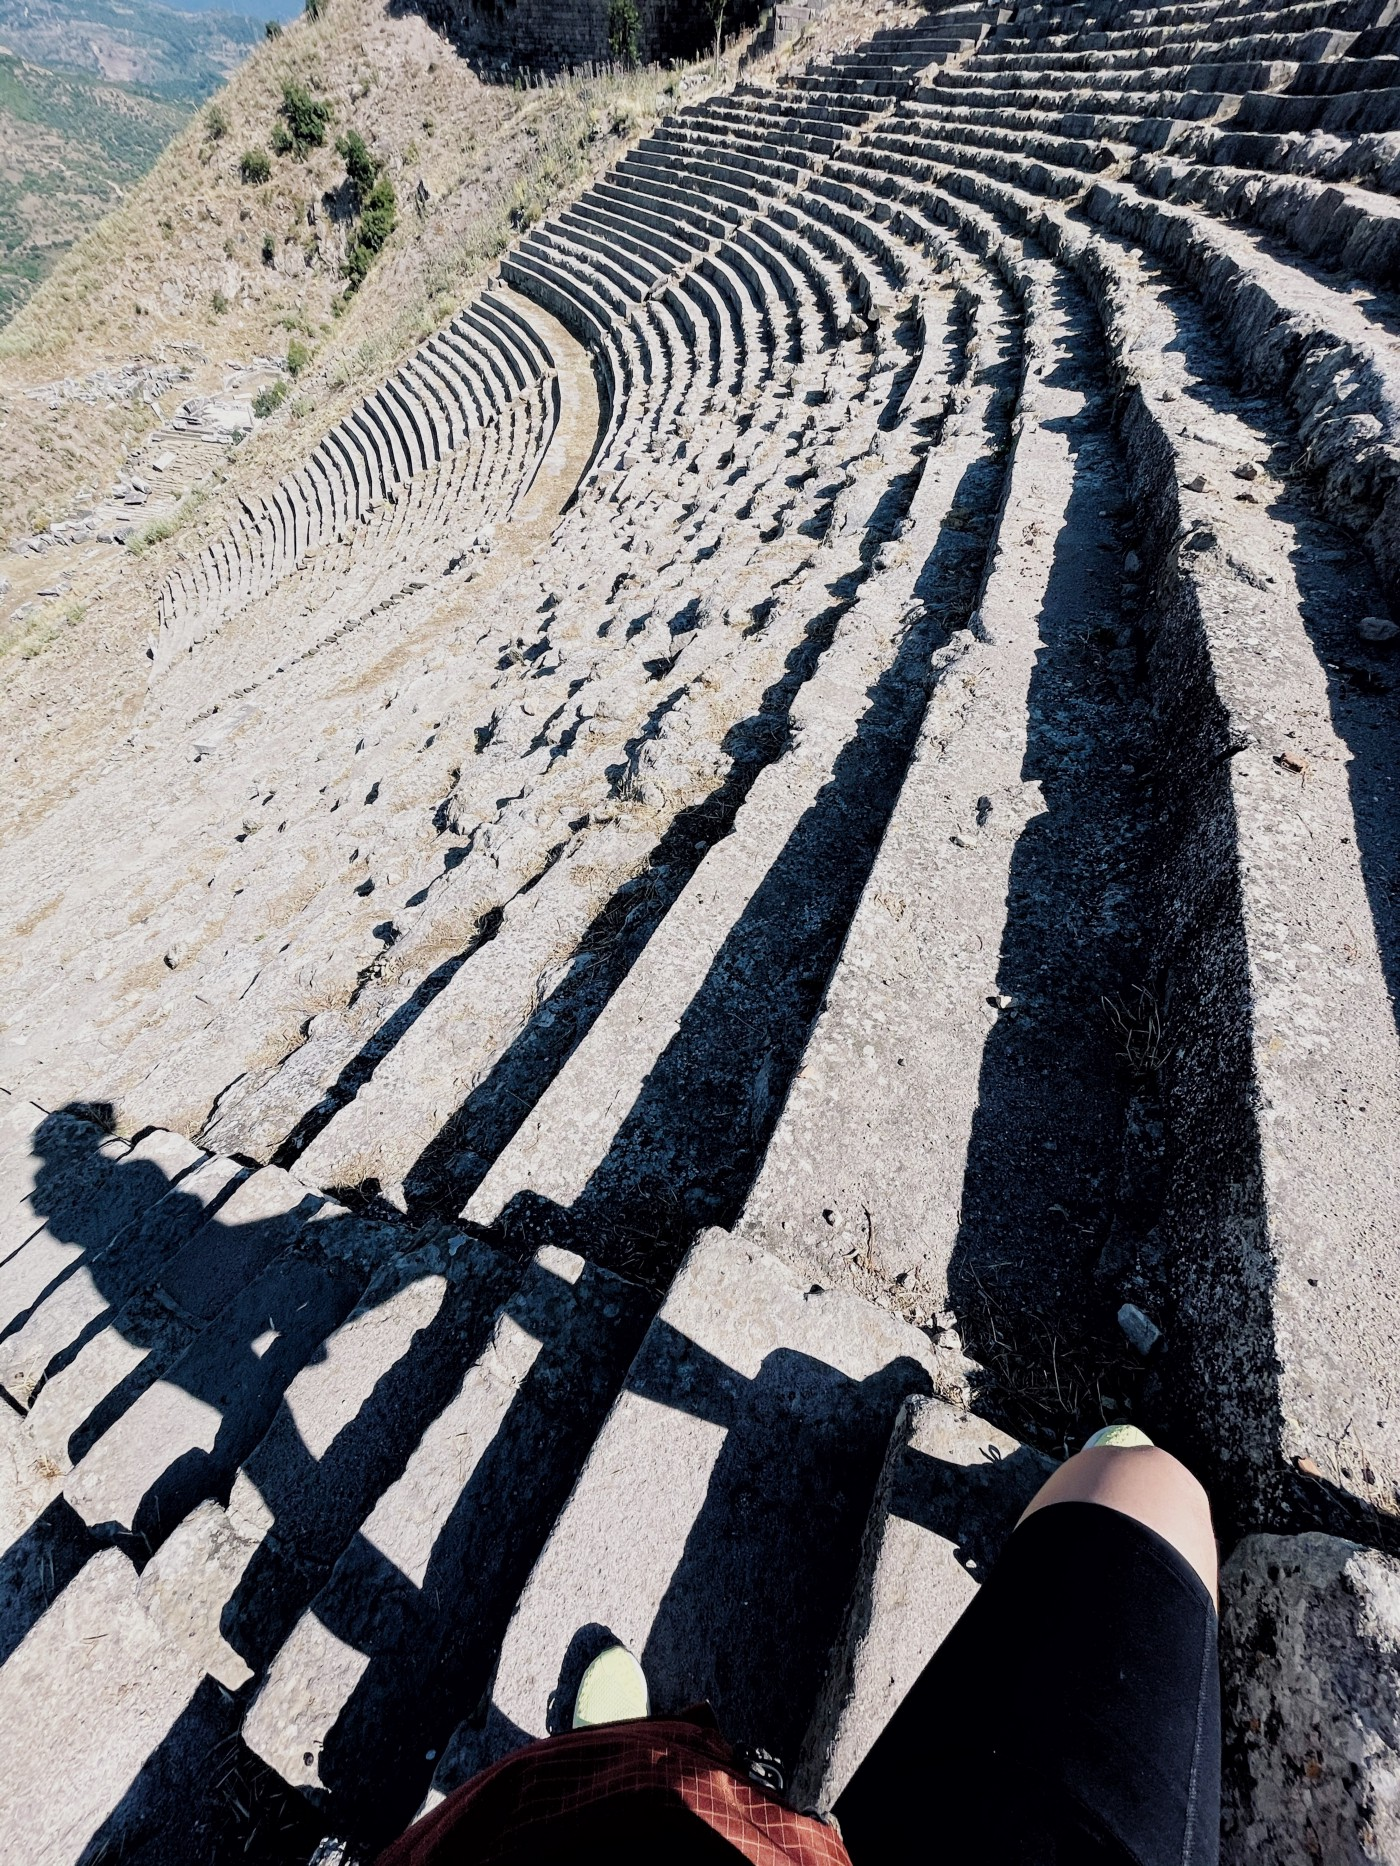 Woman's shadow over the steps of a steep antique theater in the Aegean.